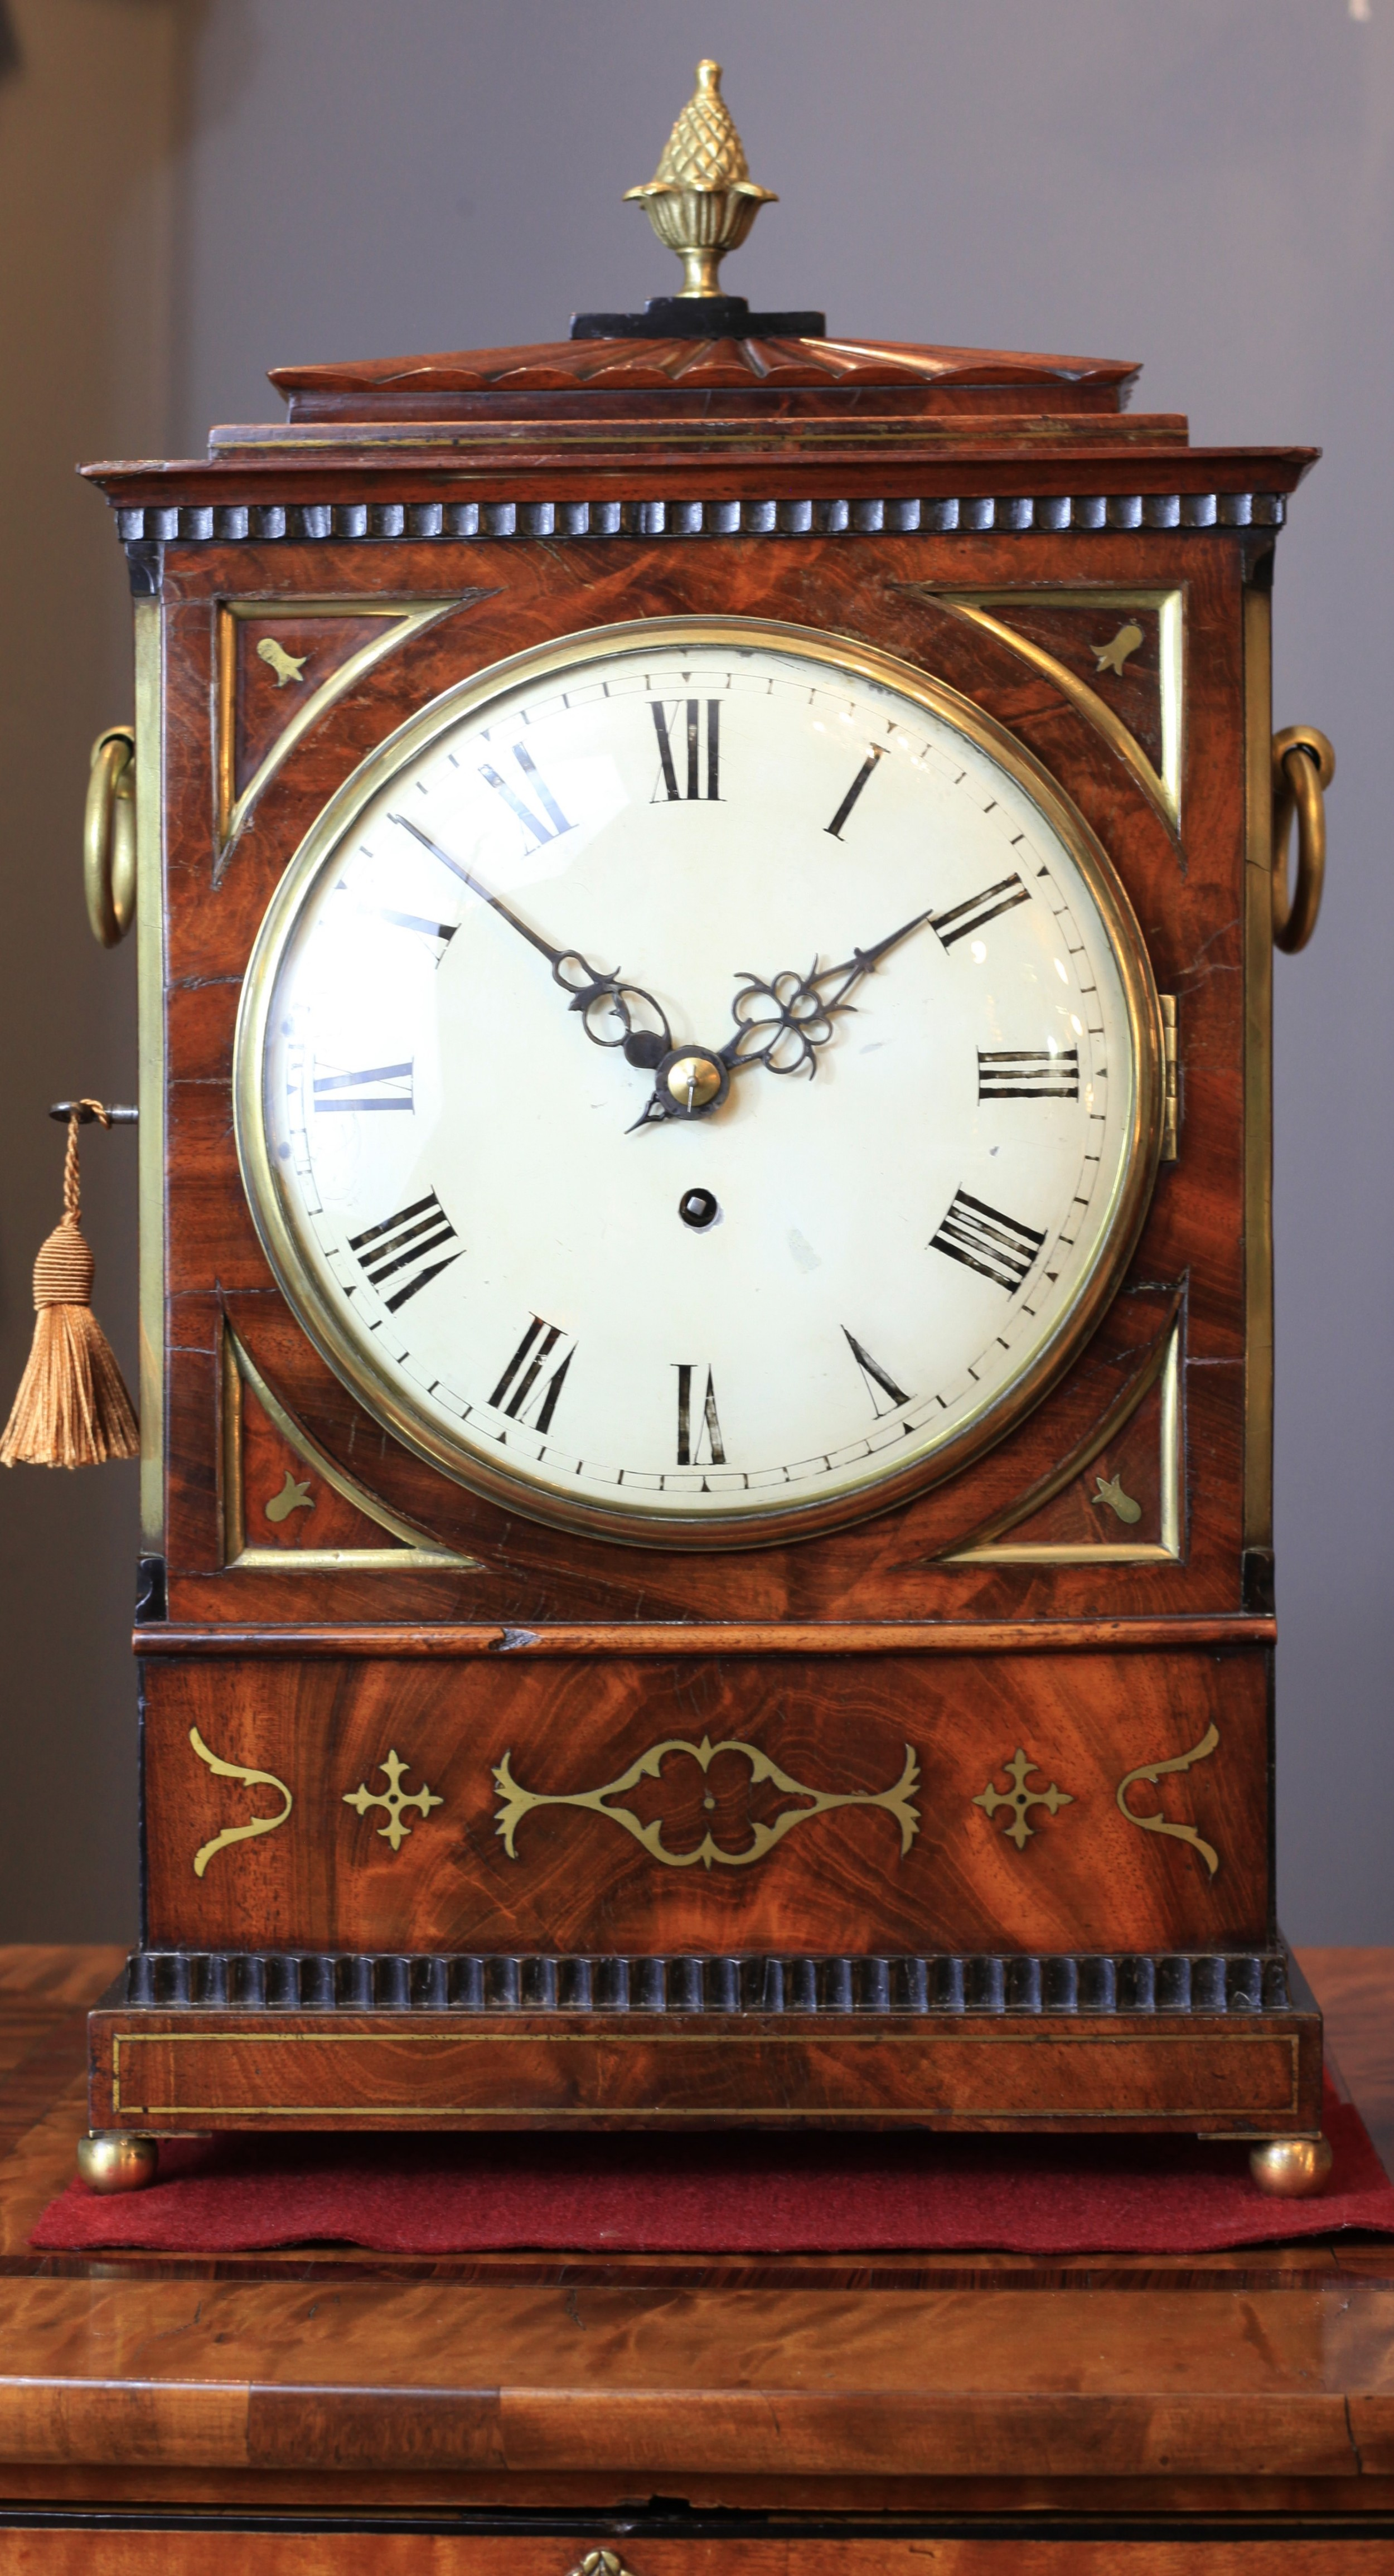 a regency period mahogany bracket clock with brass inlay and original painted dial